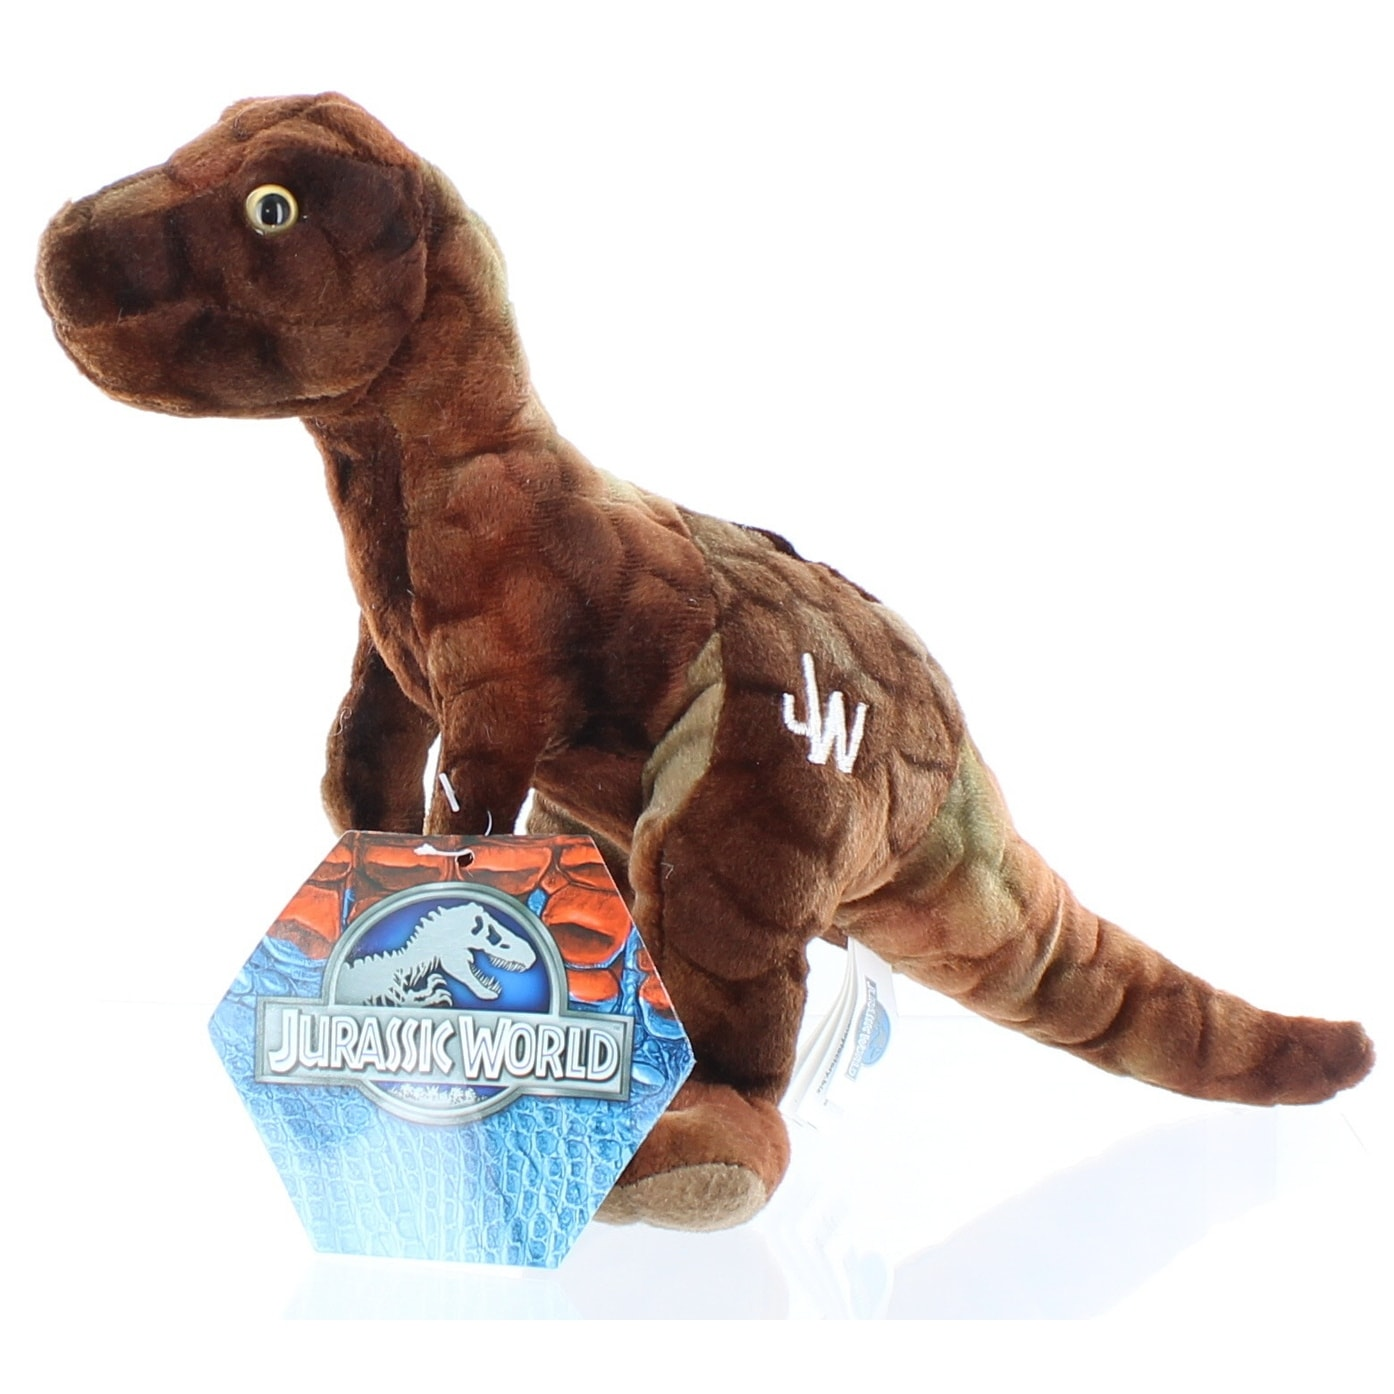 Aurora Monkey Stuffed Animal, Shop Jurassic World 7 Plush Brown Tyrannosaurus Rex Multi Overstock 13672646